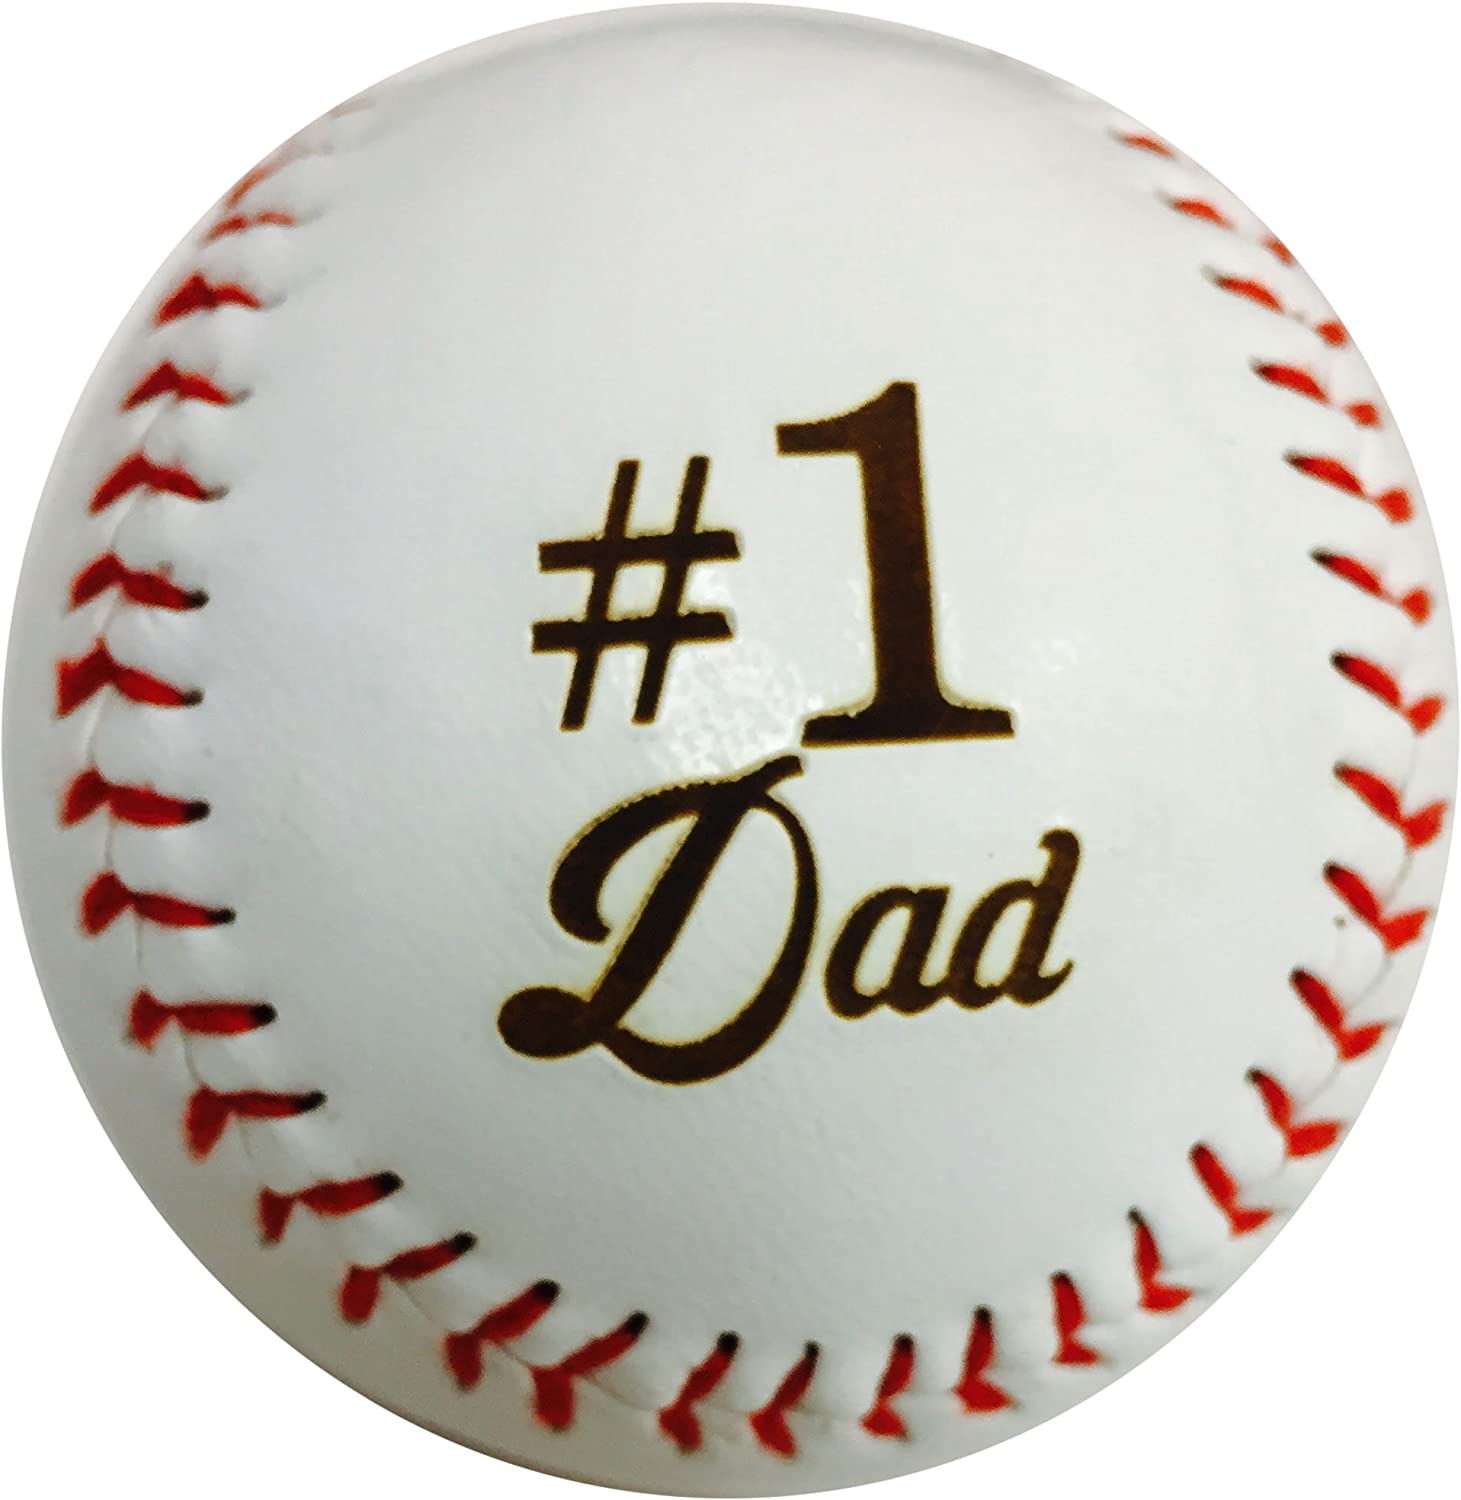 Number One #1 Dad Laser Engraved Synthetic Leather Baseball Gift